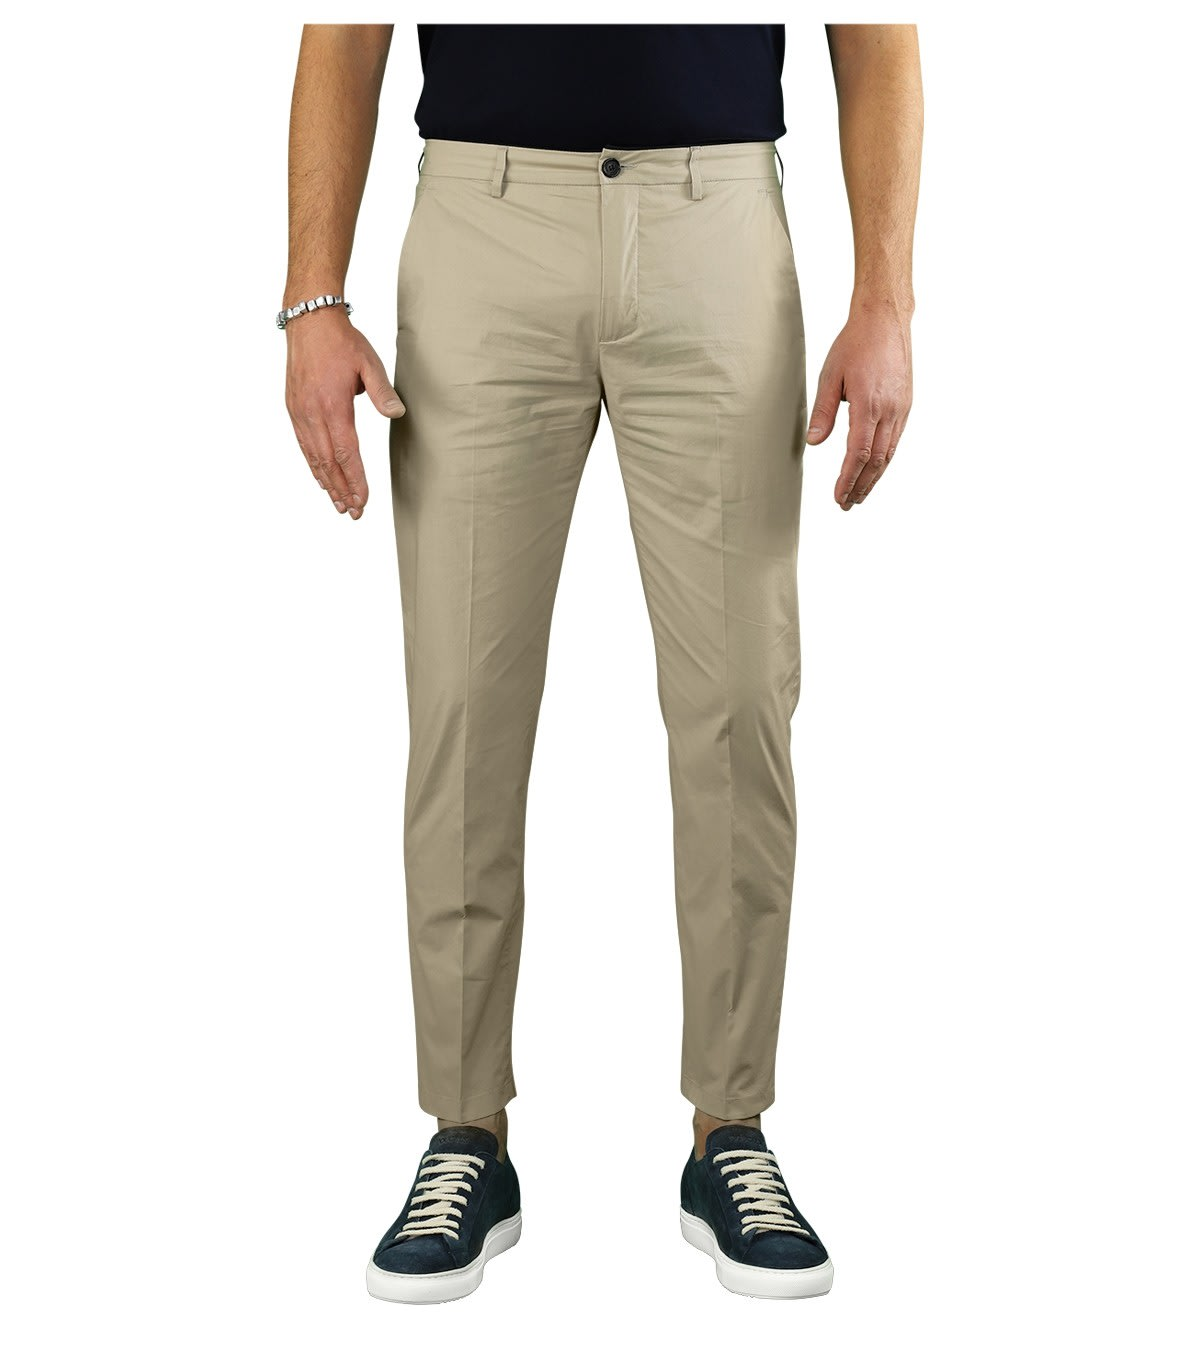 Department 5 Cottons PRINCE BEIGE CHINO TROUSERS